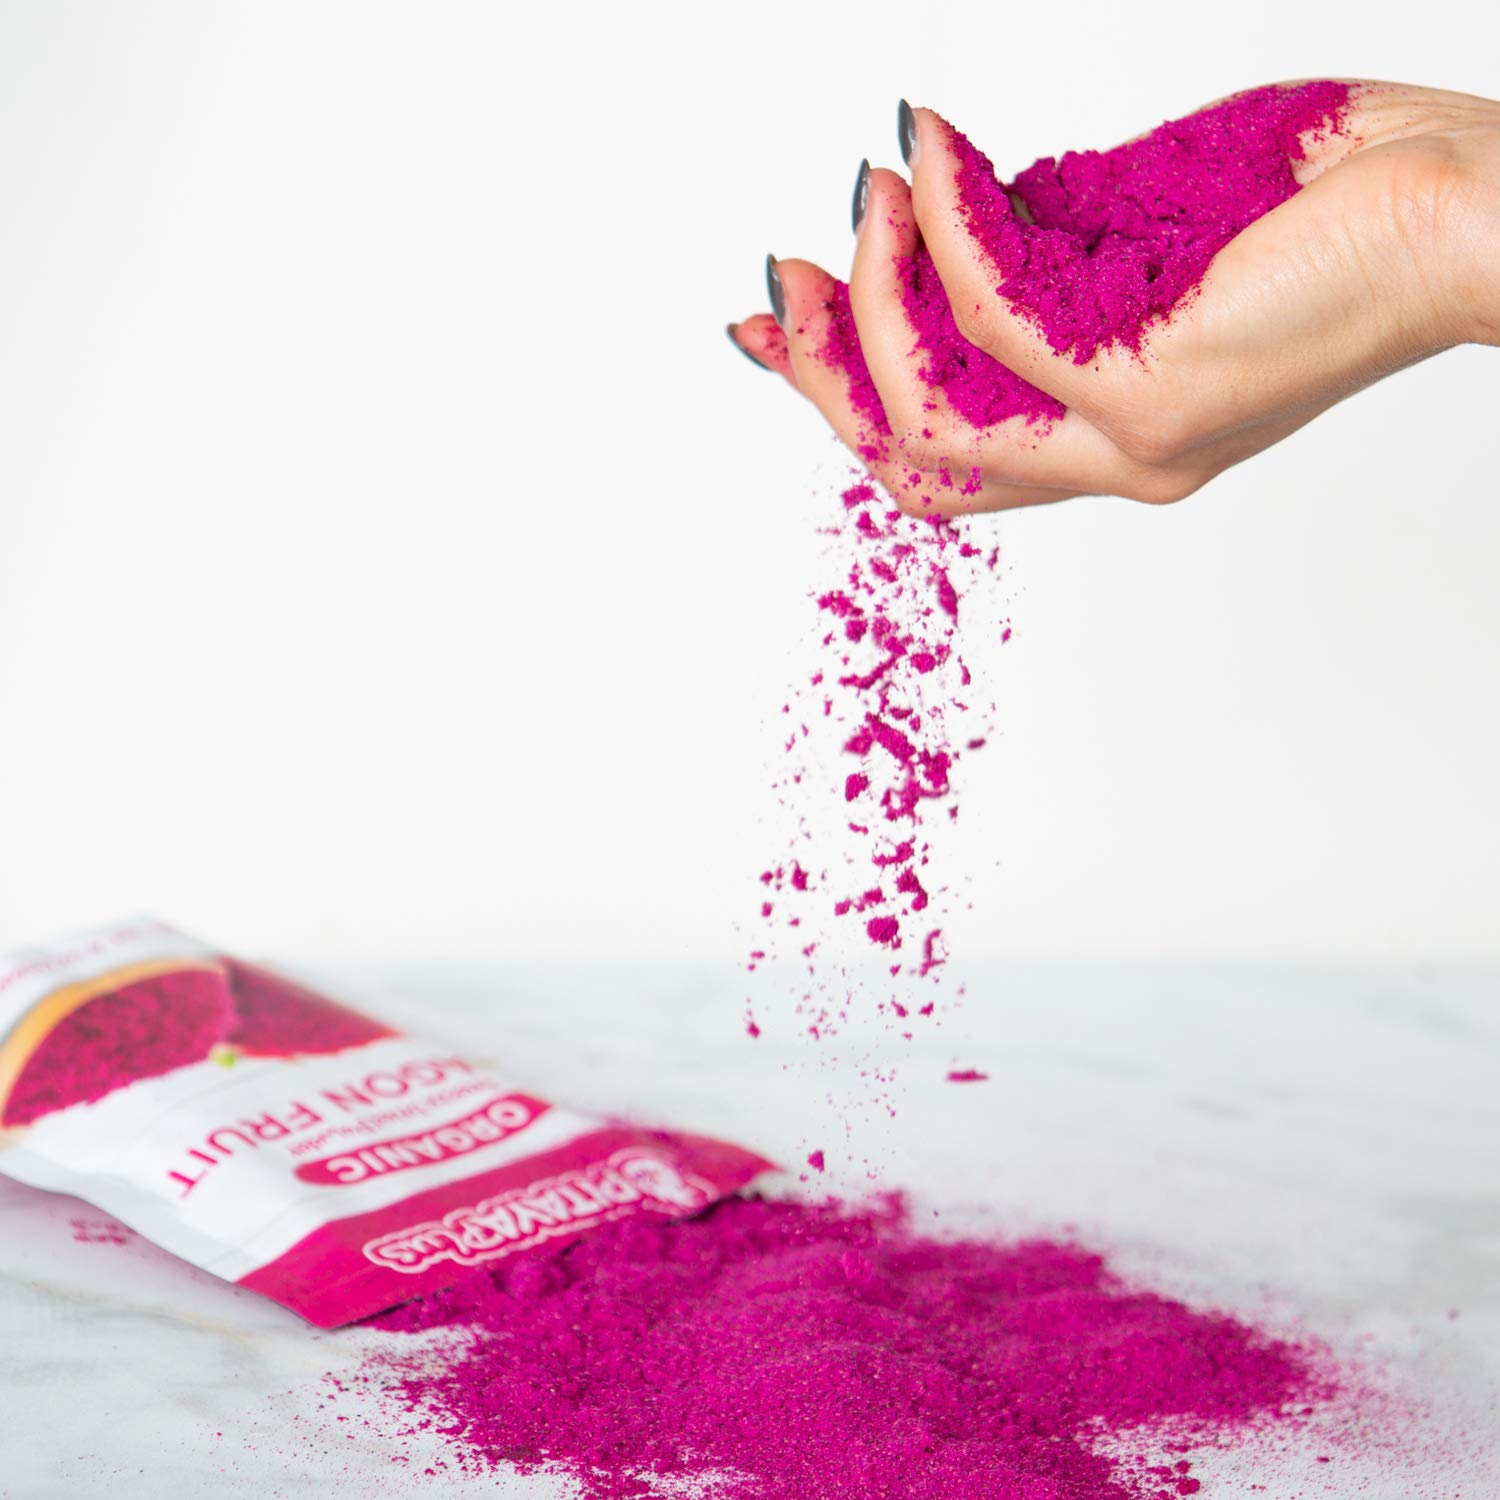 Pitaya Plus Freeze Dried Red Dragon Fruit Powder Organic. 4 Ounces of 100% Dragon Fruit for the Brightest Pink Rceipes. USDA and Oregon Tilth Organic, Non-GMO, Earth Kosher, Vegan Verified, B-Corp. by Pitaya Plus (Image #4)